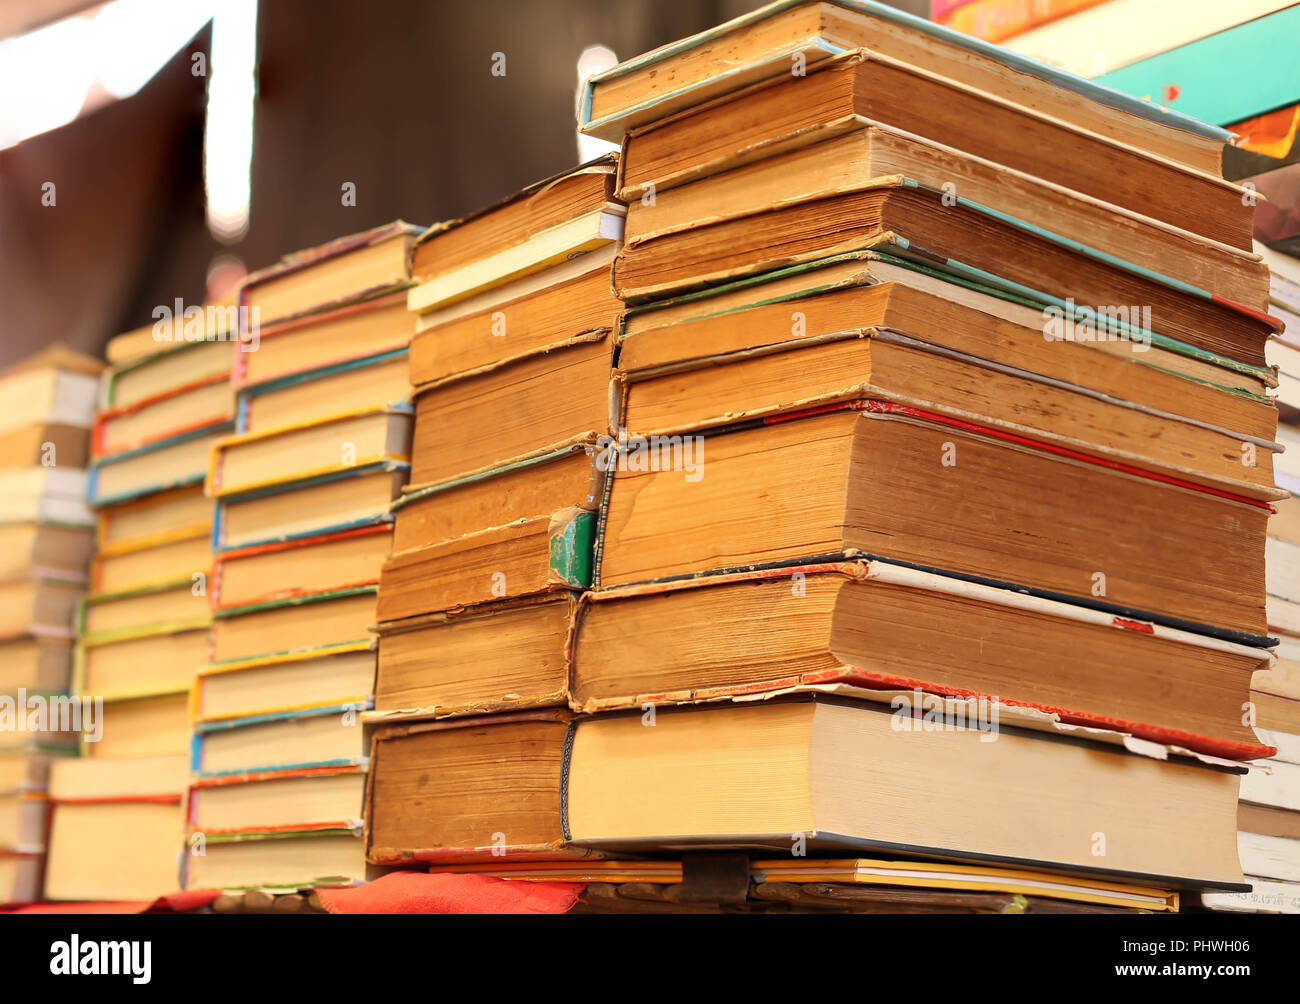 Piles of old books on a table in blur background. - Stock Image